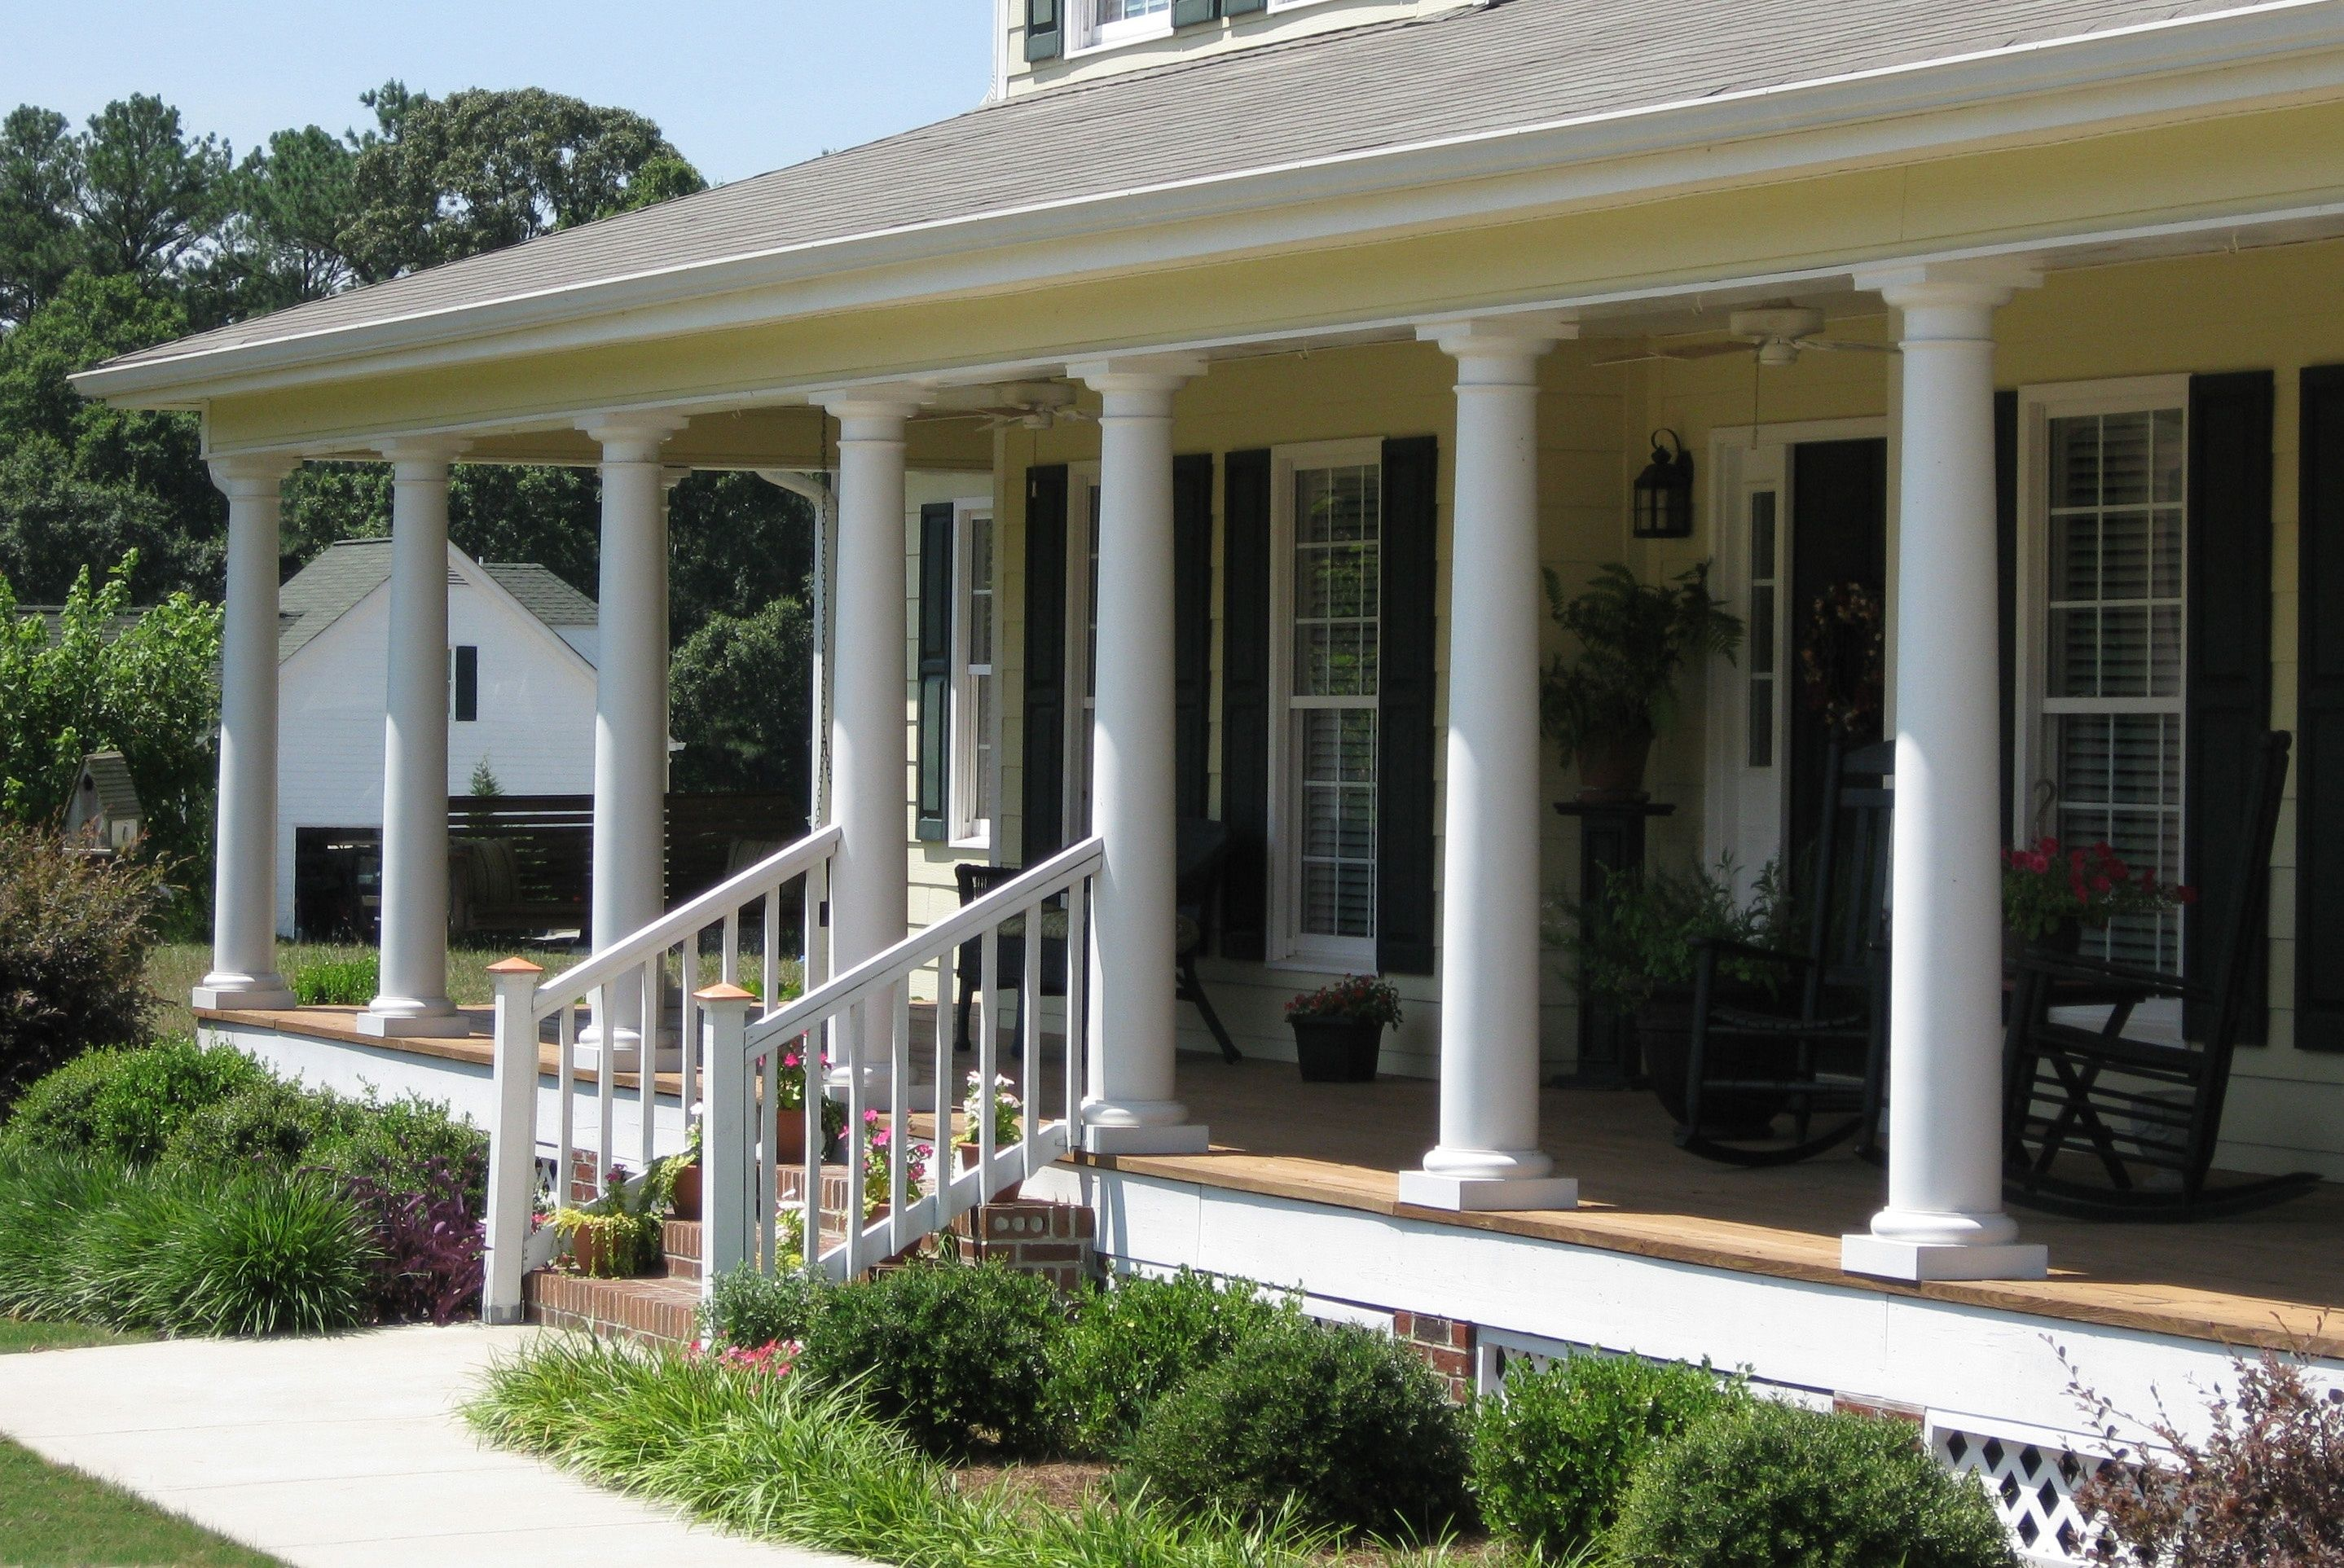 The 14 Perfect Front Porch Round Columns Yu20k2 Https Sanantoniohomeinspector Biz The 14 Perfect Front Porch Front Porch Columns Porch Columns Porch Pillars